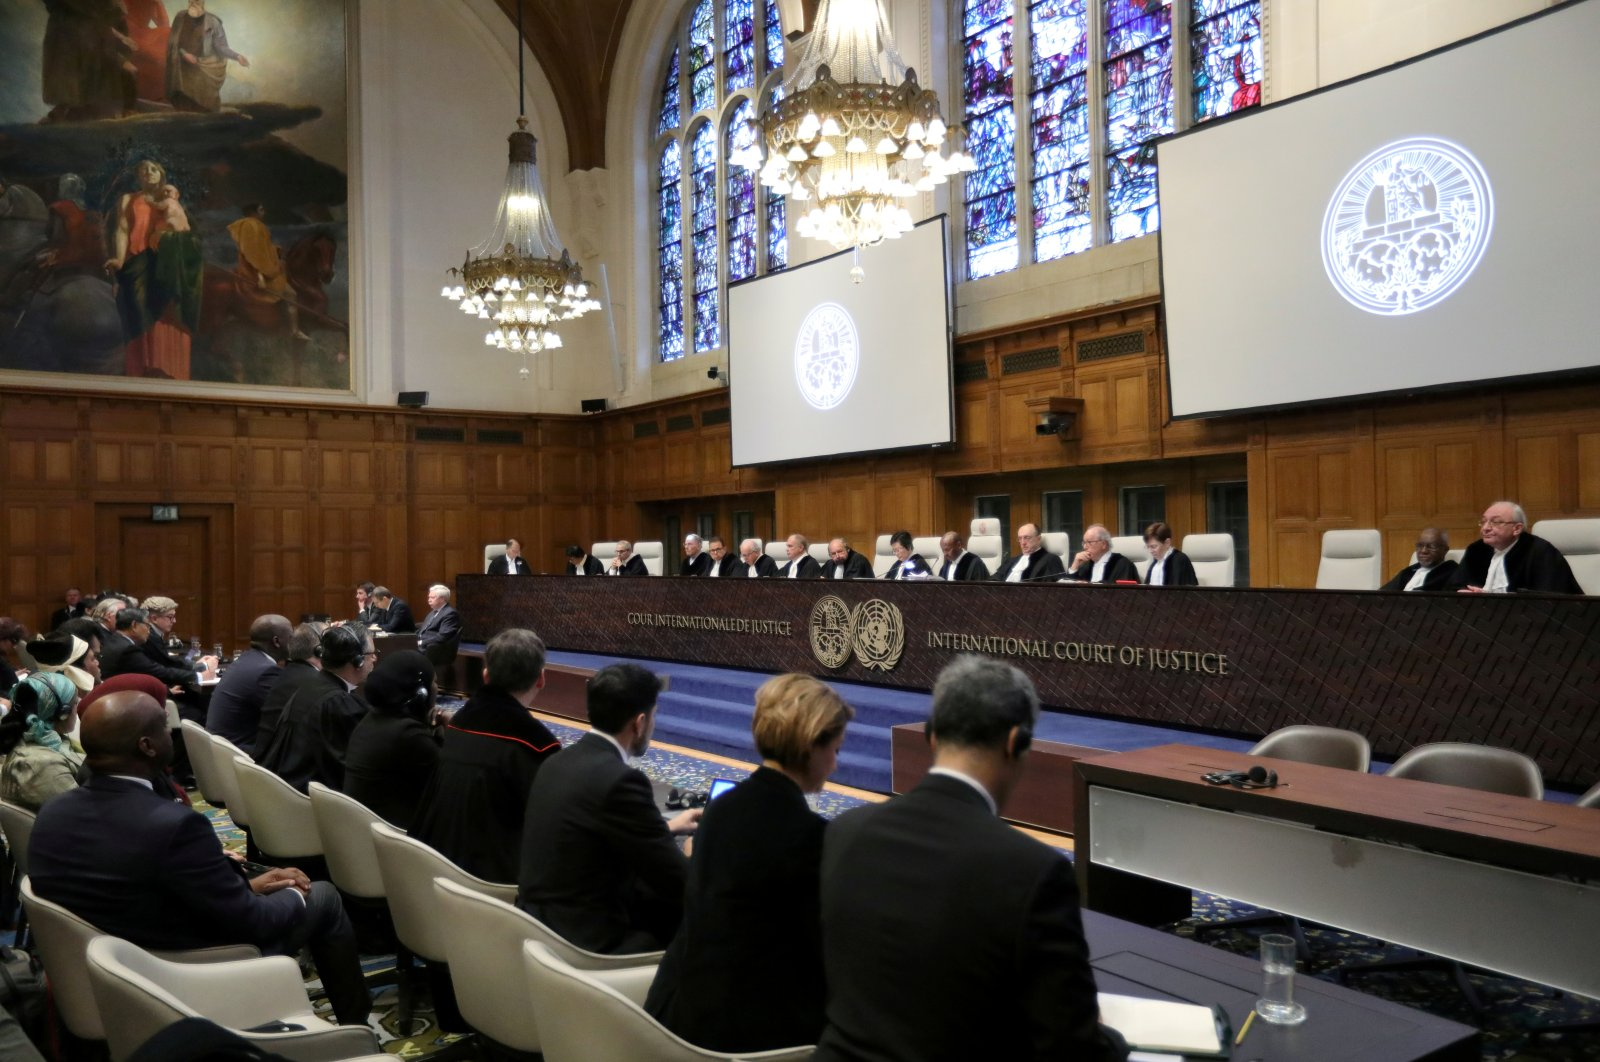 General view of the court during the ruling in a case filed by Gambia against Myanmar alleging genocide against the minority Muslim Rohingya population, at the International Court of Justice (ICJ) in The Hague, Netherlands on Jan. 23, 2020. (Reuters Photo)